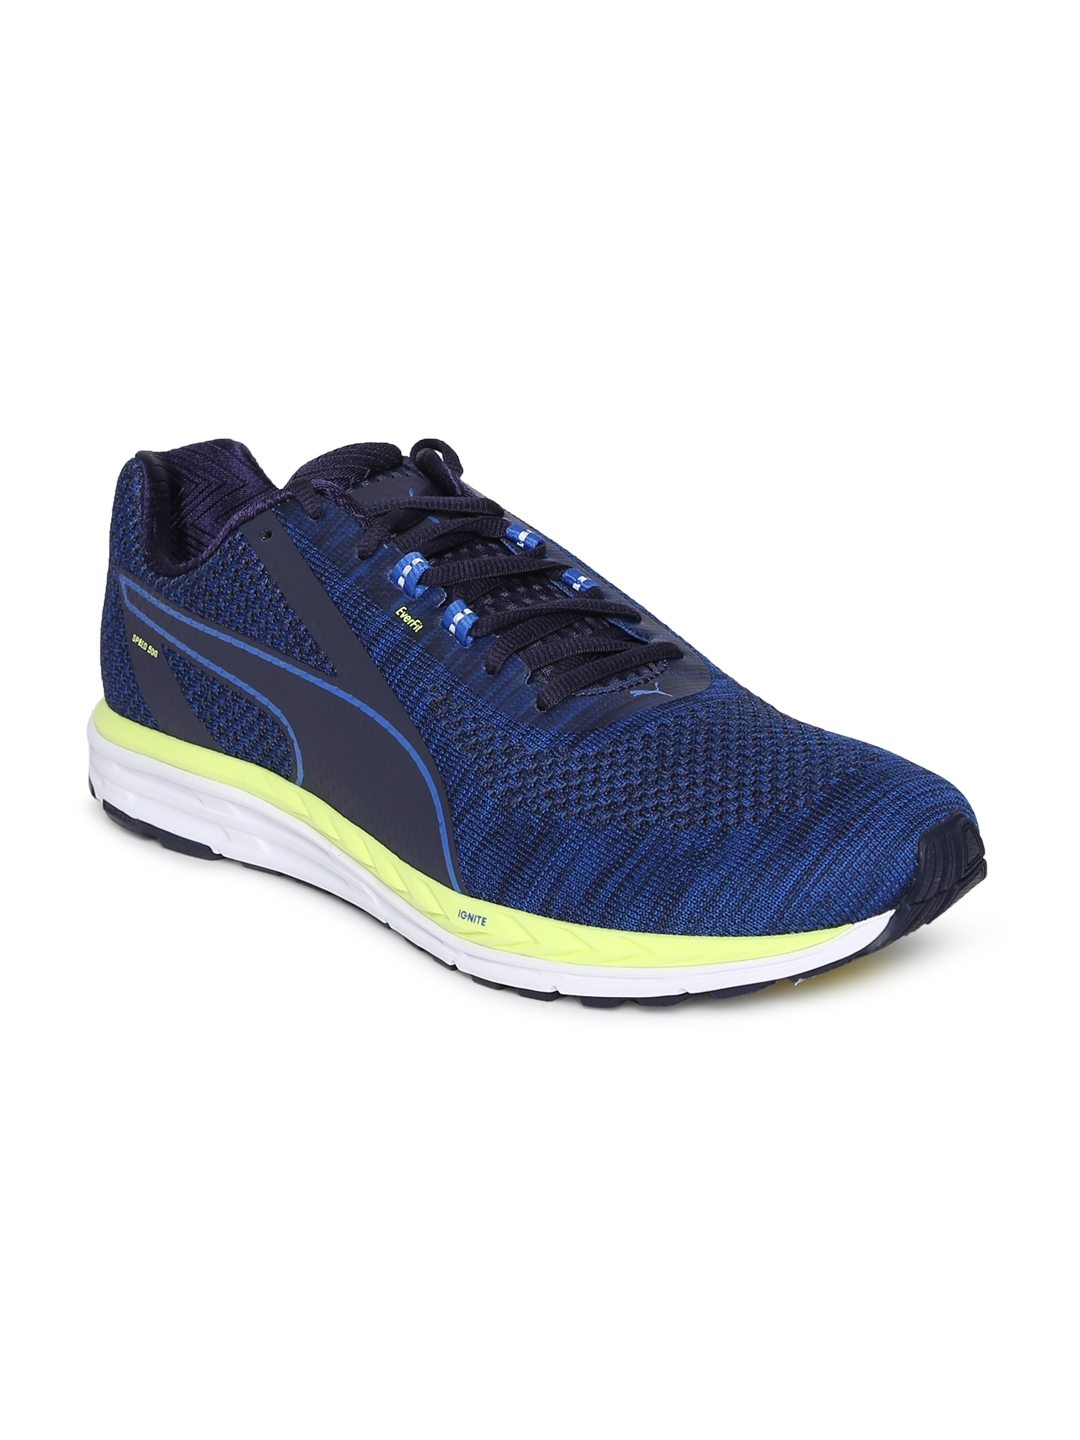 bcf9cf4967c Buy Puma Men Blue Speed 500 IGNITE 3 Running Shoes - Sports Shoes ...